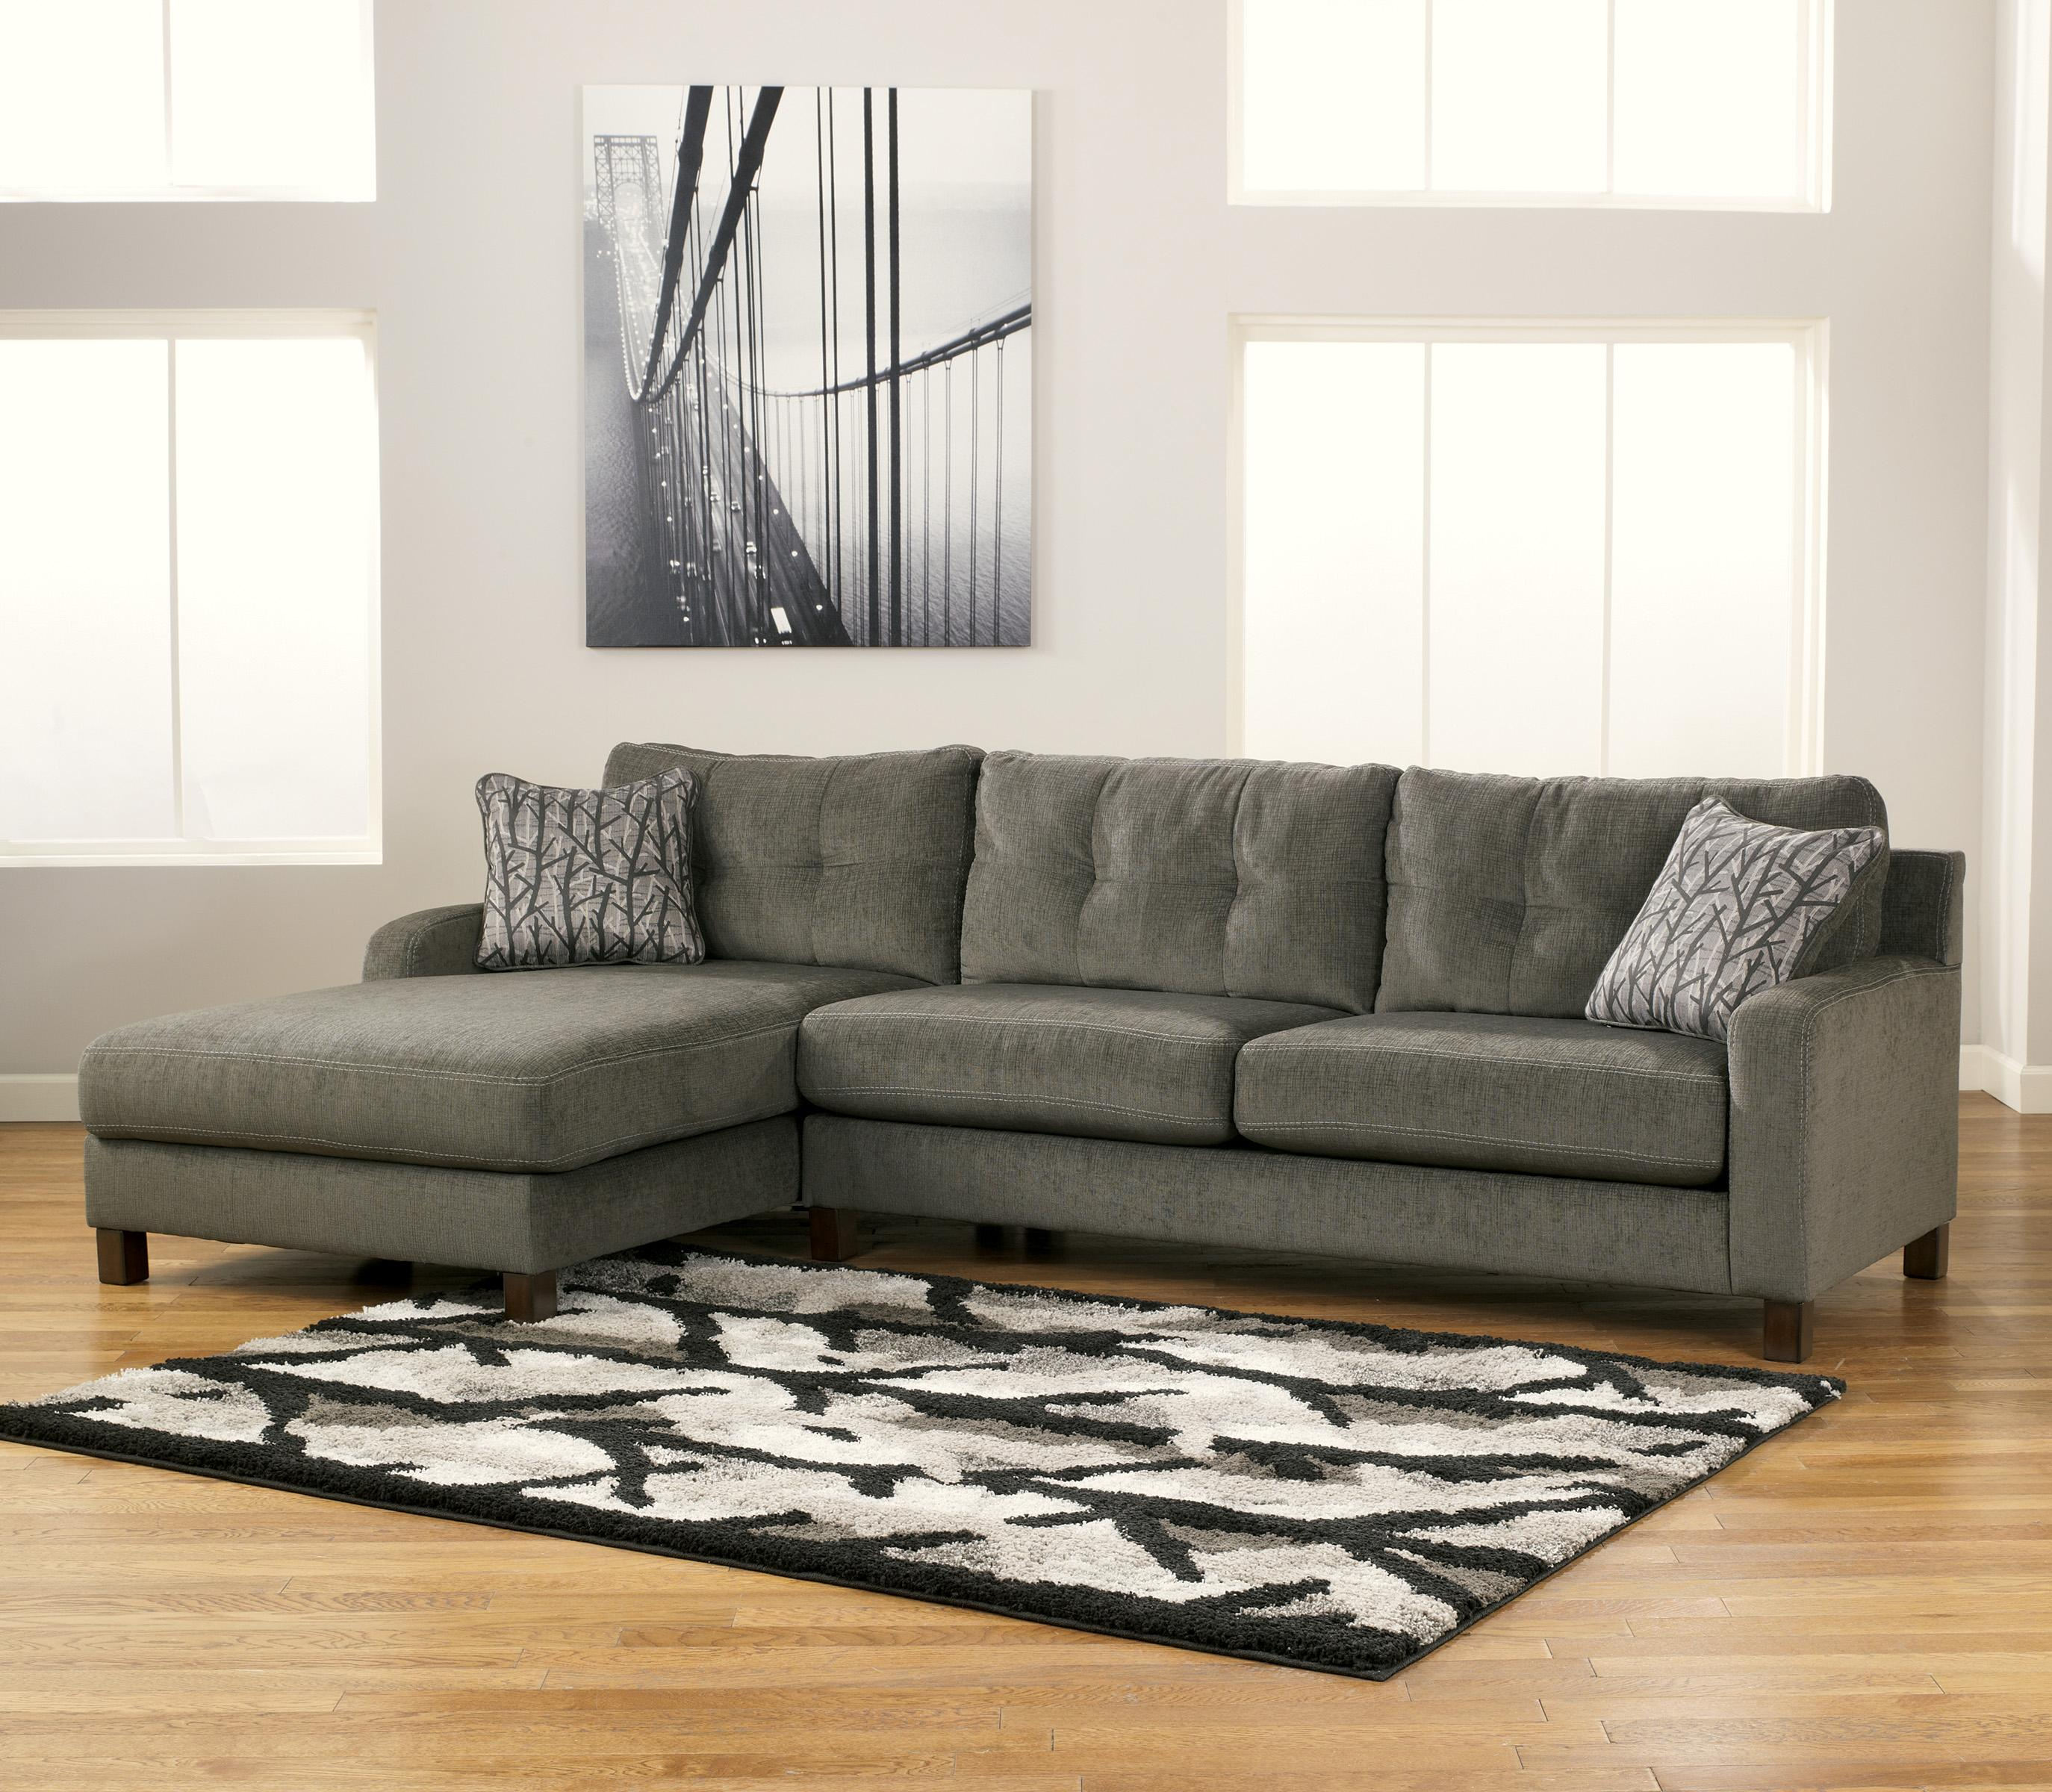 Signature Design by Ashley Siroun Steel Contemporary 2 Piece